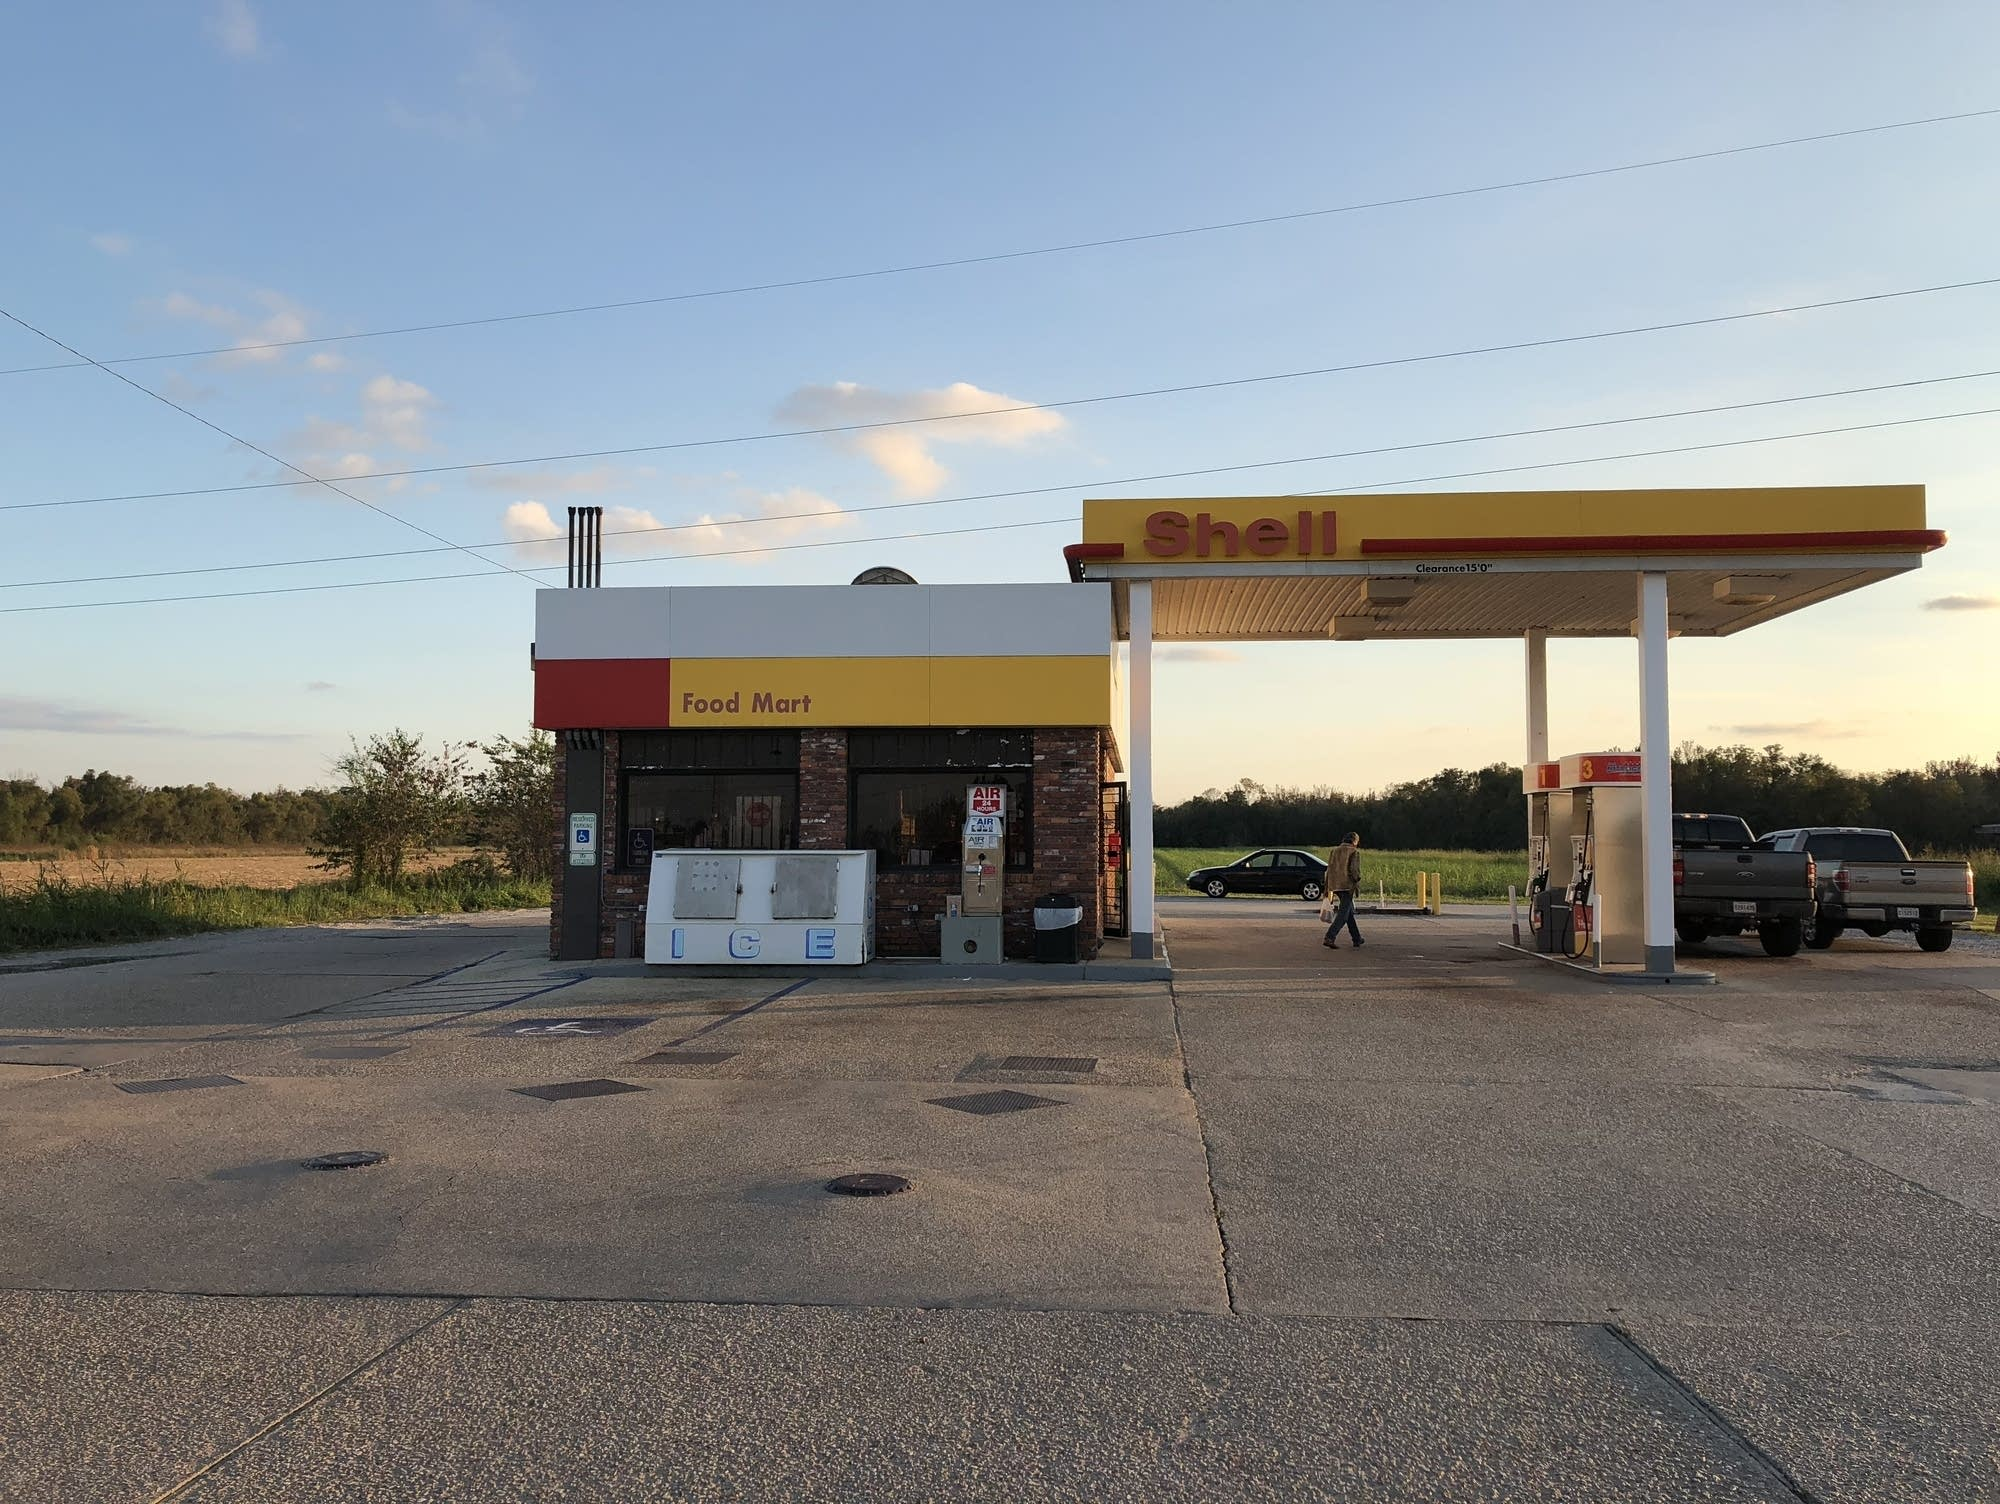 Louisiana Shell station